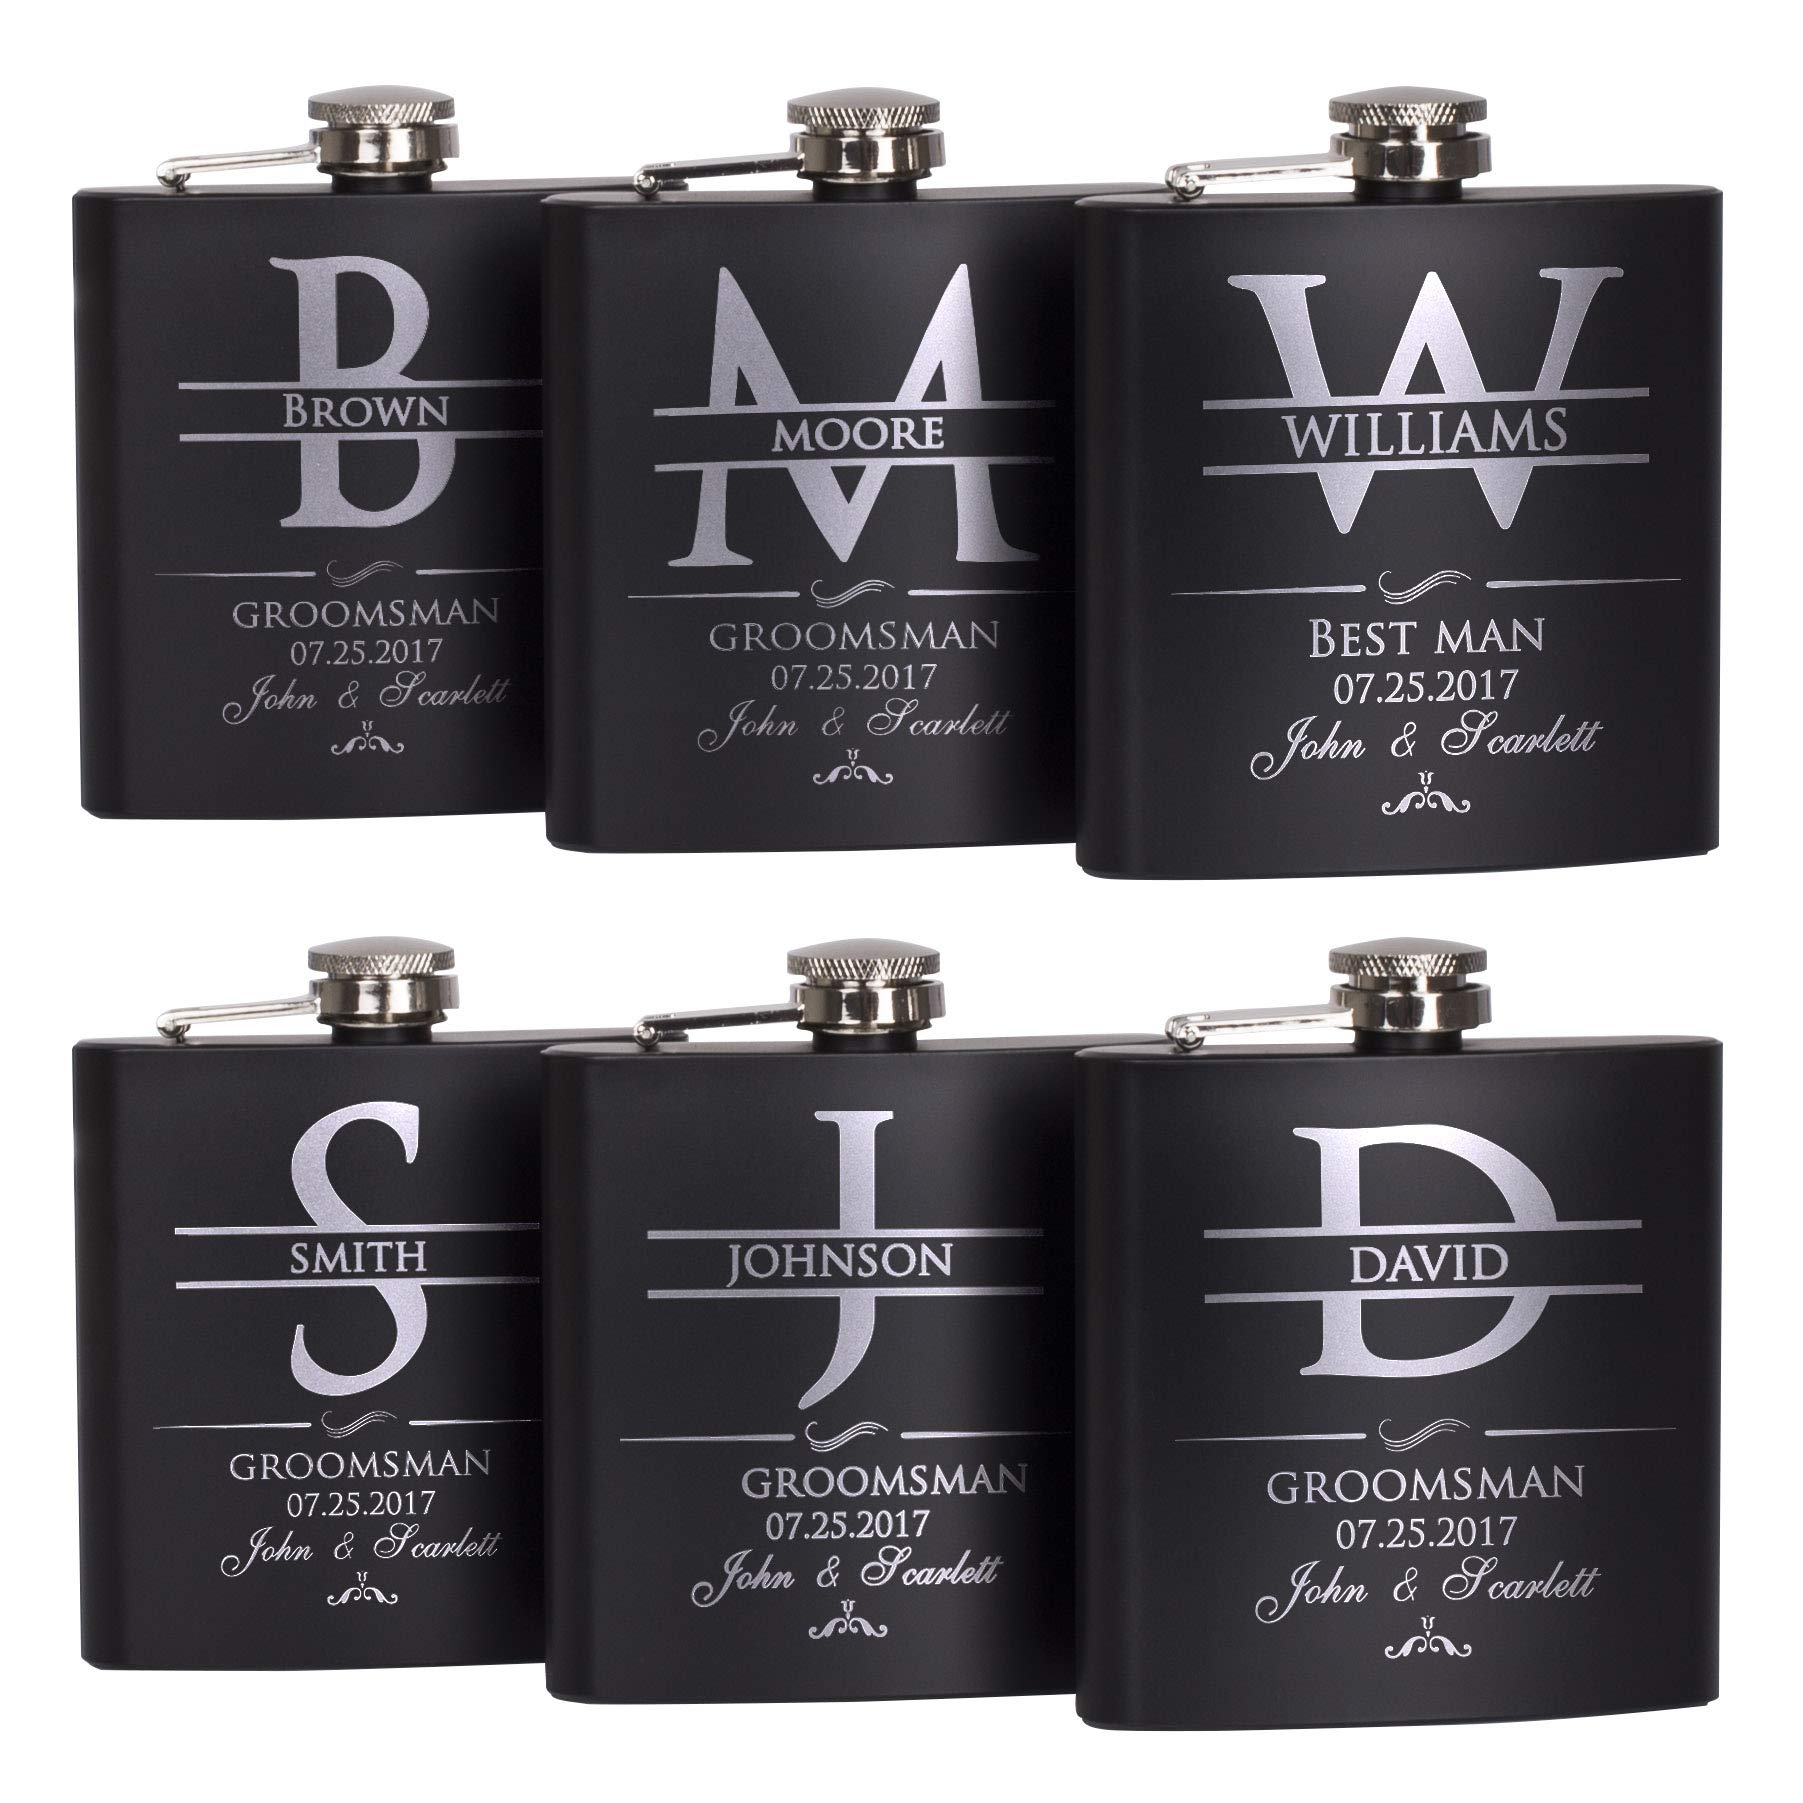 P Lab Set Of 6 - Groomsmen Gift - Groomsman Gifts For Wedding, Wedding Favor Customized Flask Set w Optional Gift Box - Engraved 6oz Stainless Steel Flask Custom Personalized Flask Gift Set, Black #2 by Personalization Lab